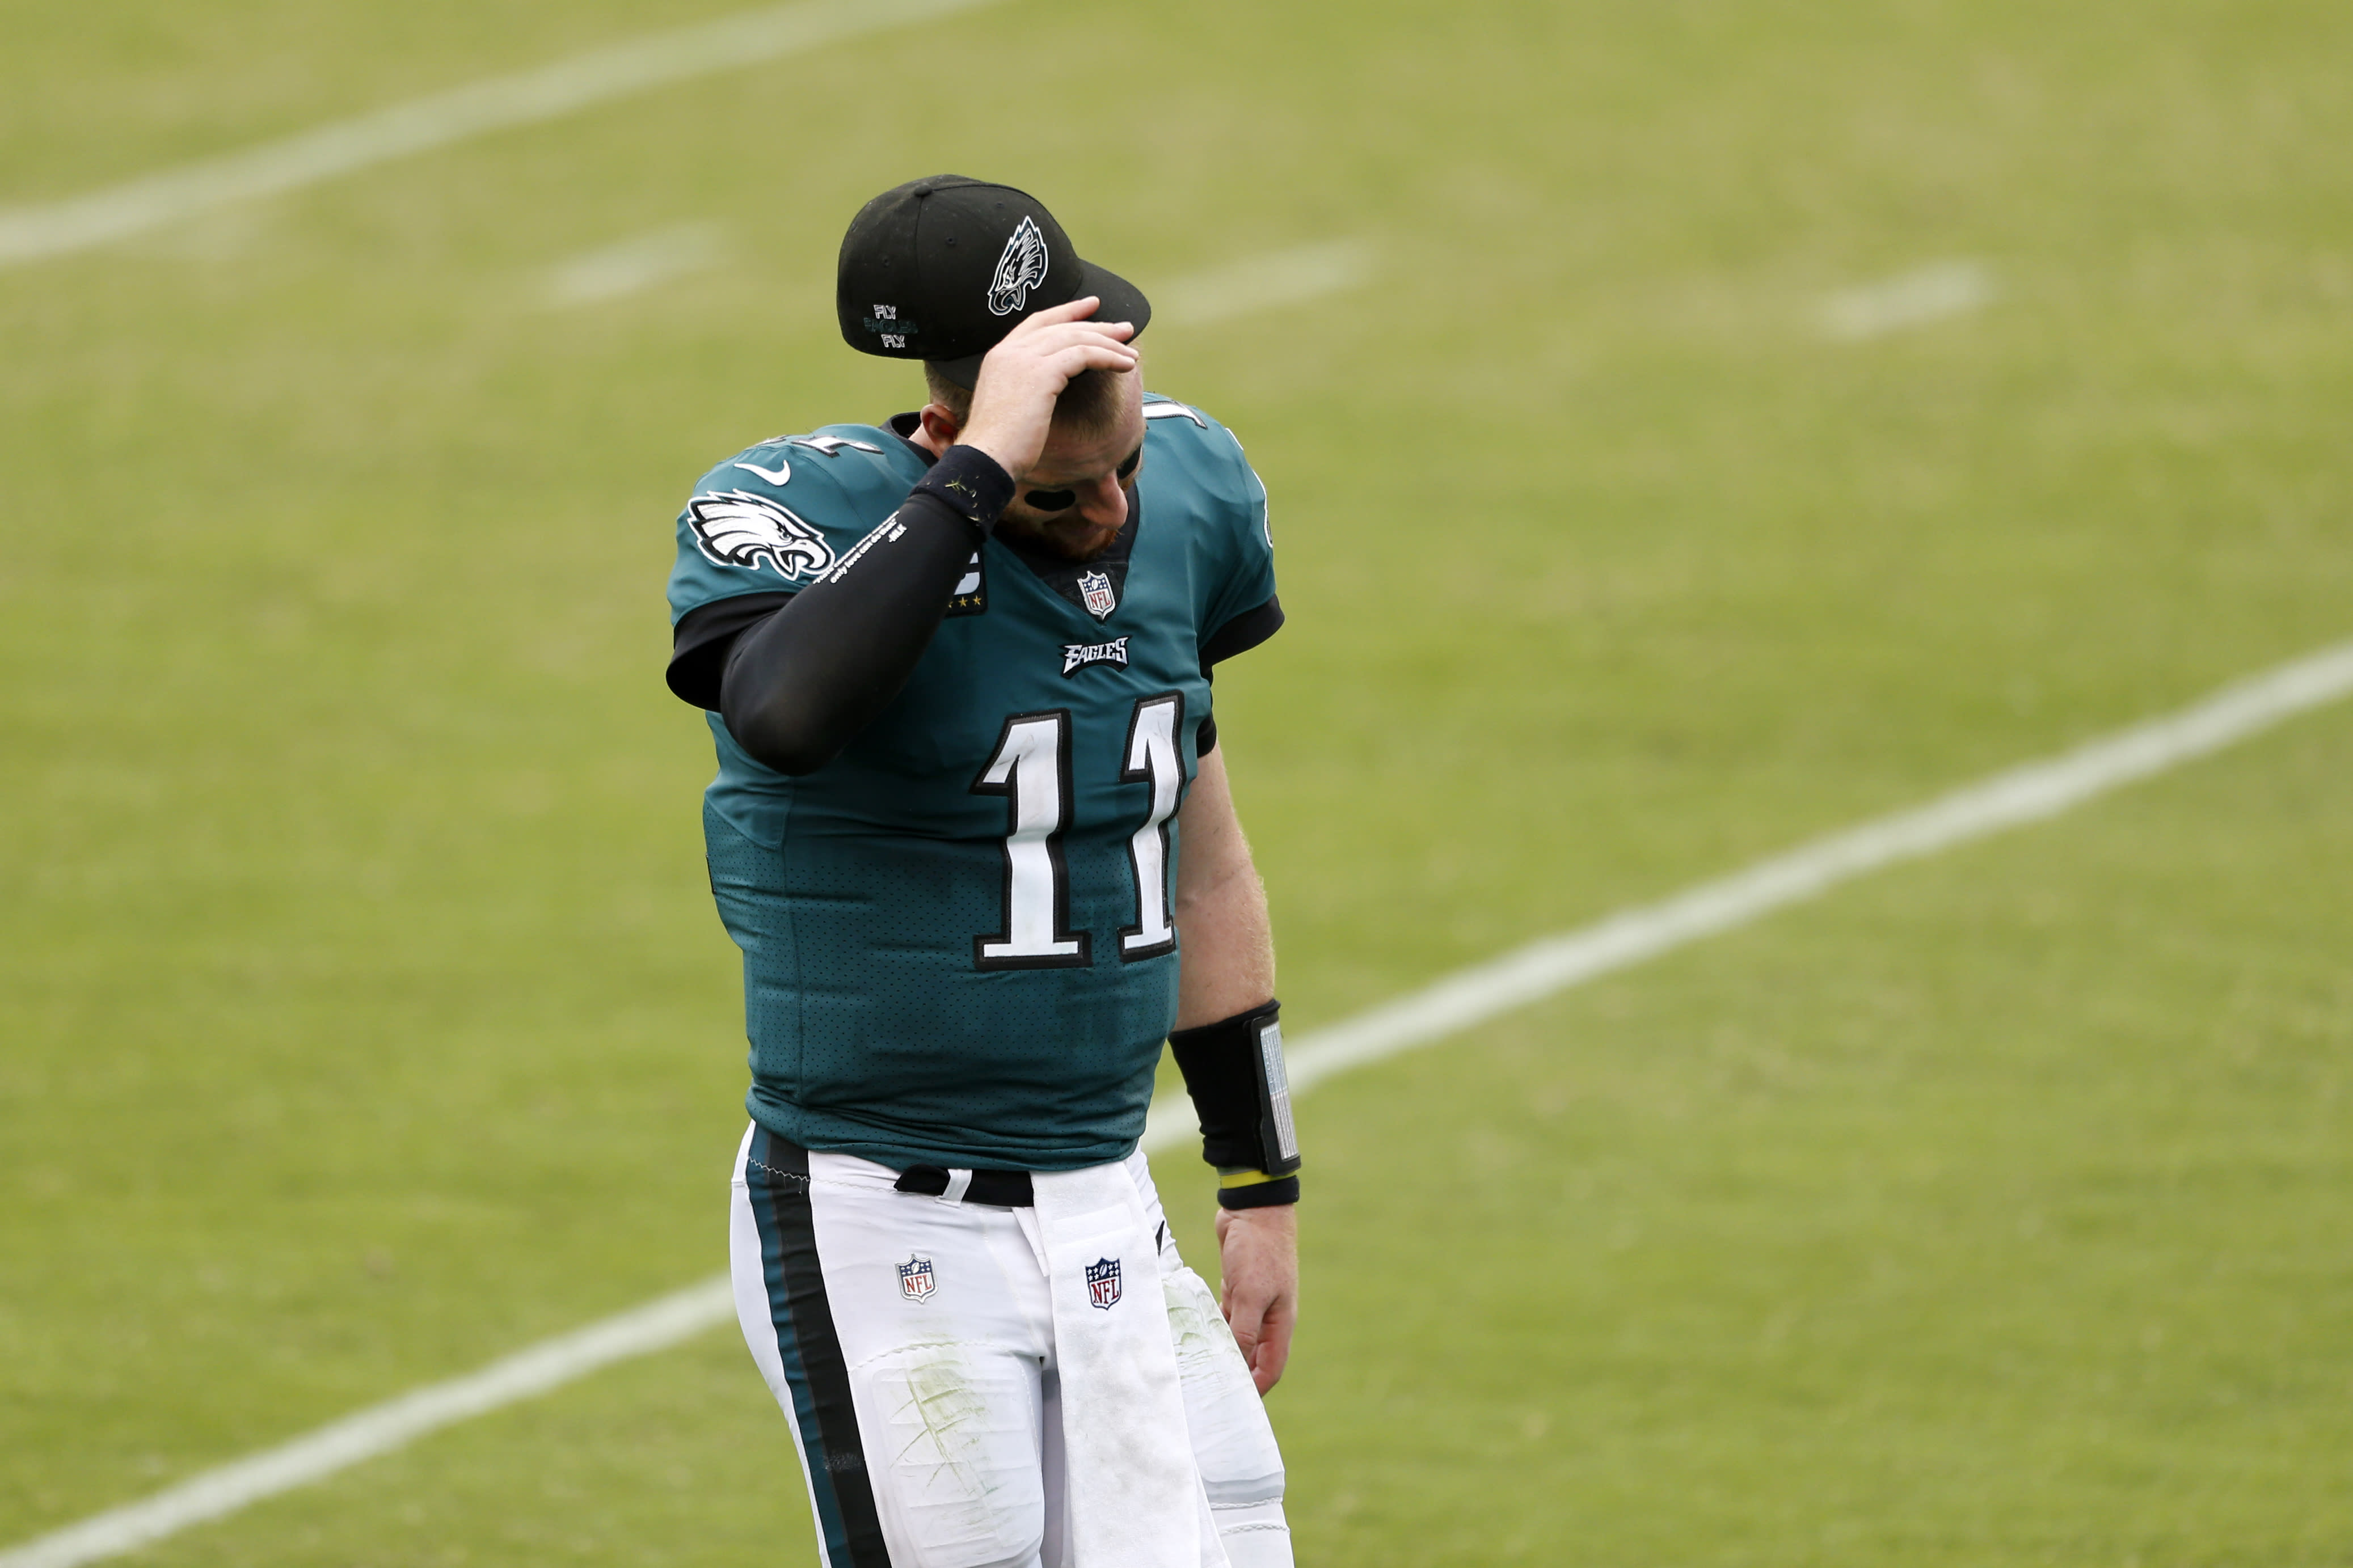 Philadelphia Eagles' Carson Wentz walks off the field after an NFL football game against the Cincinnati Bengals, Sunday, Sept. 27, 2020, in Philadelphia. (AP Photo/Laurence Kesterson)